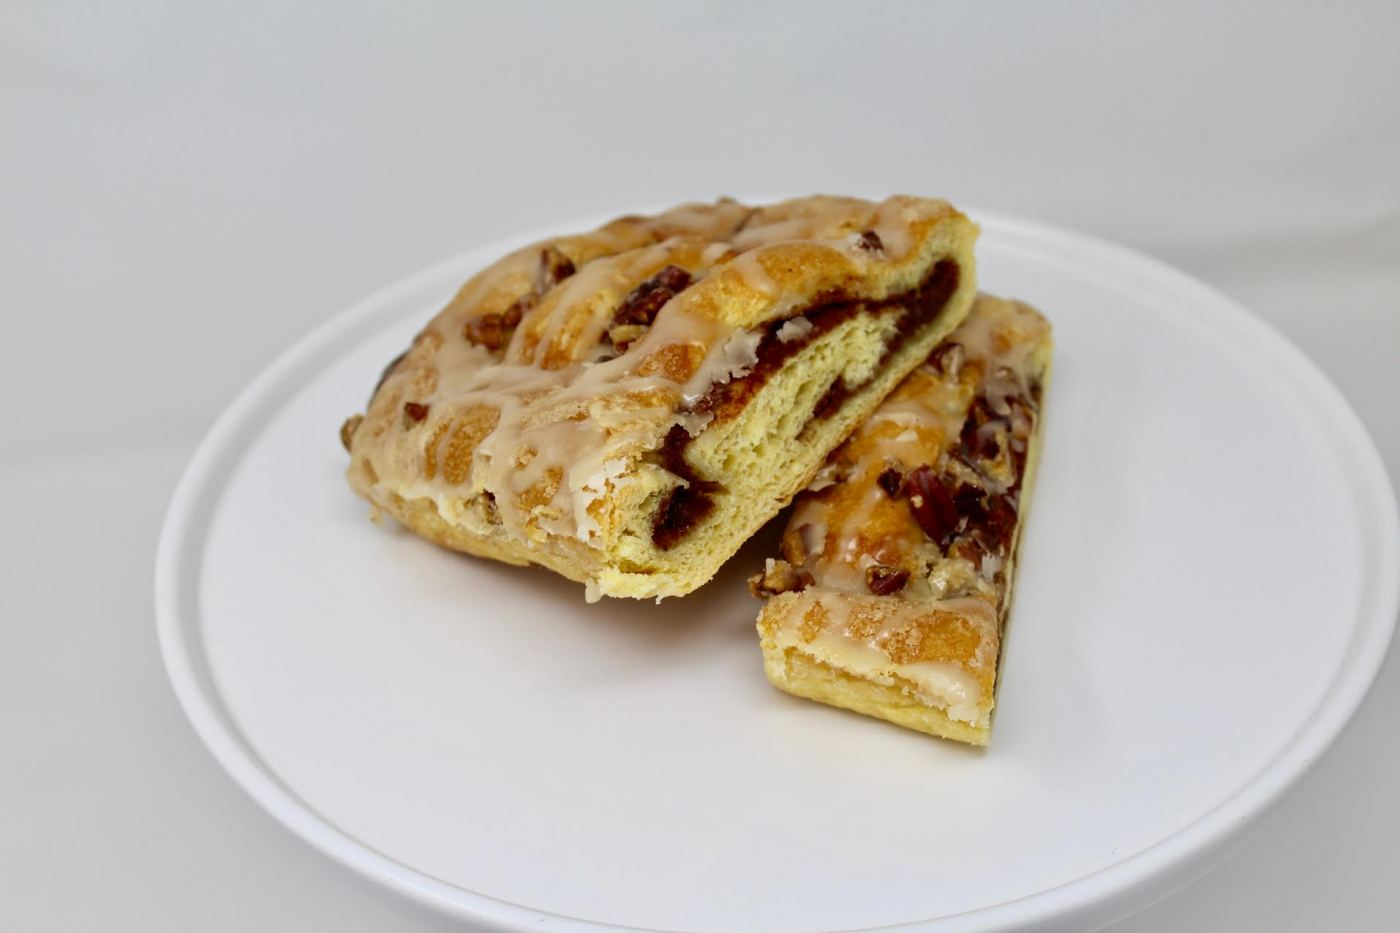 The Caramel Pecan Danish Coffee Cake from Arnie's Bakery is our pick for Sweet Treat of the Week